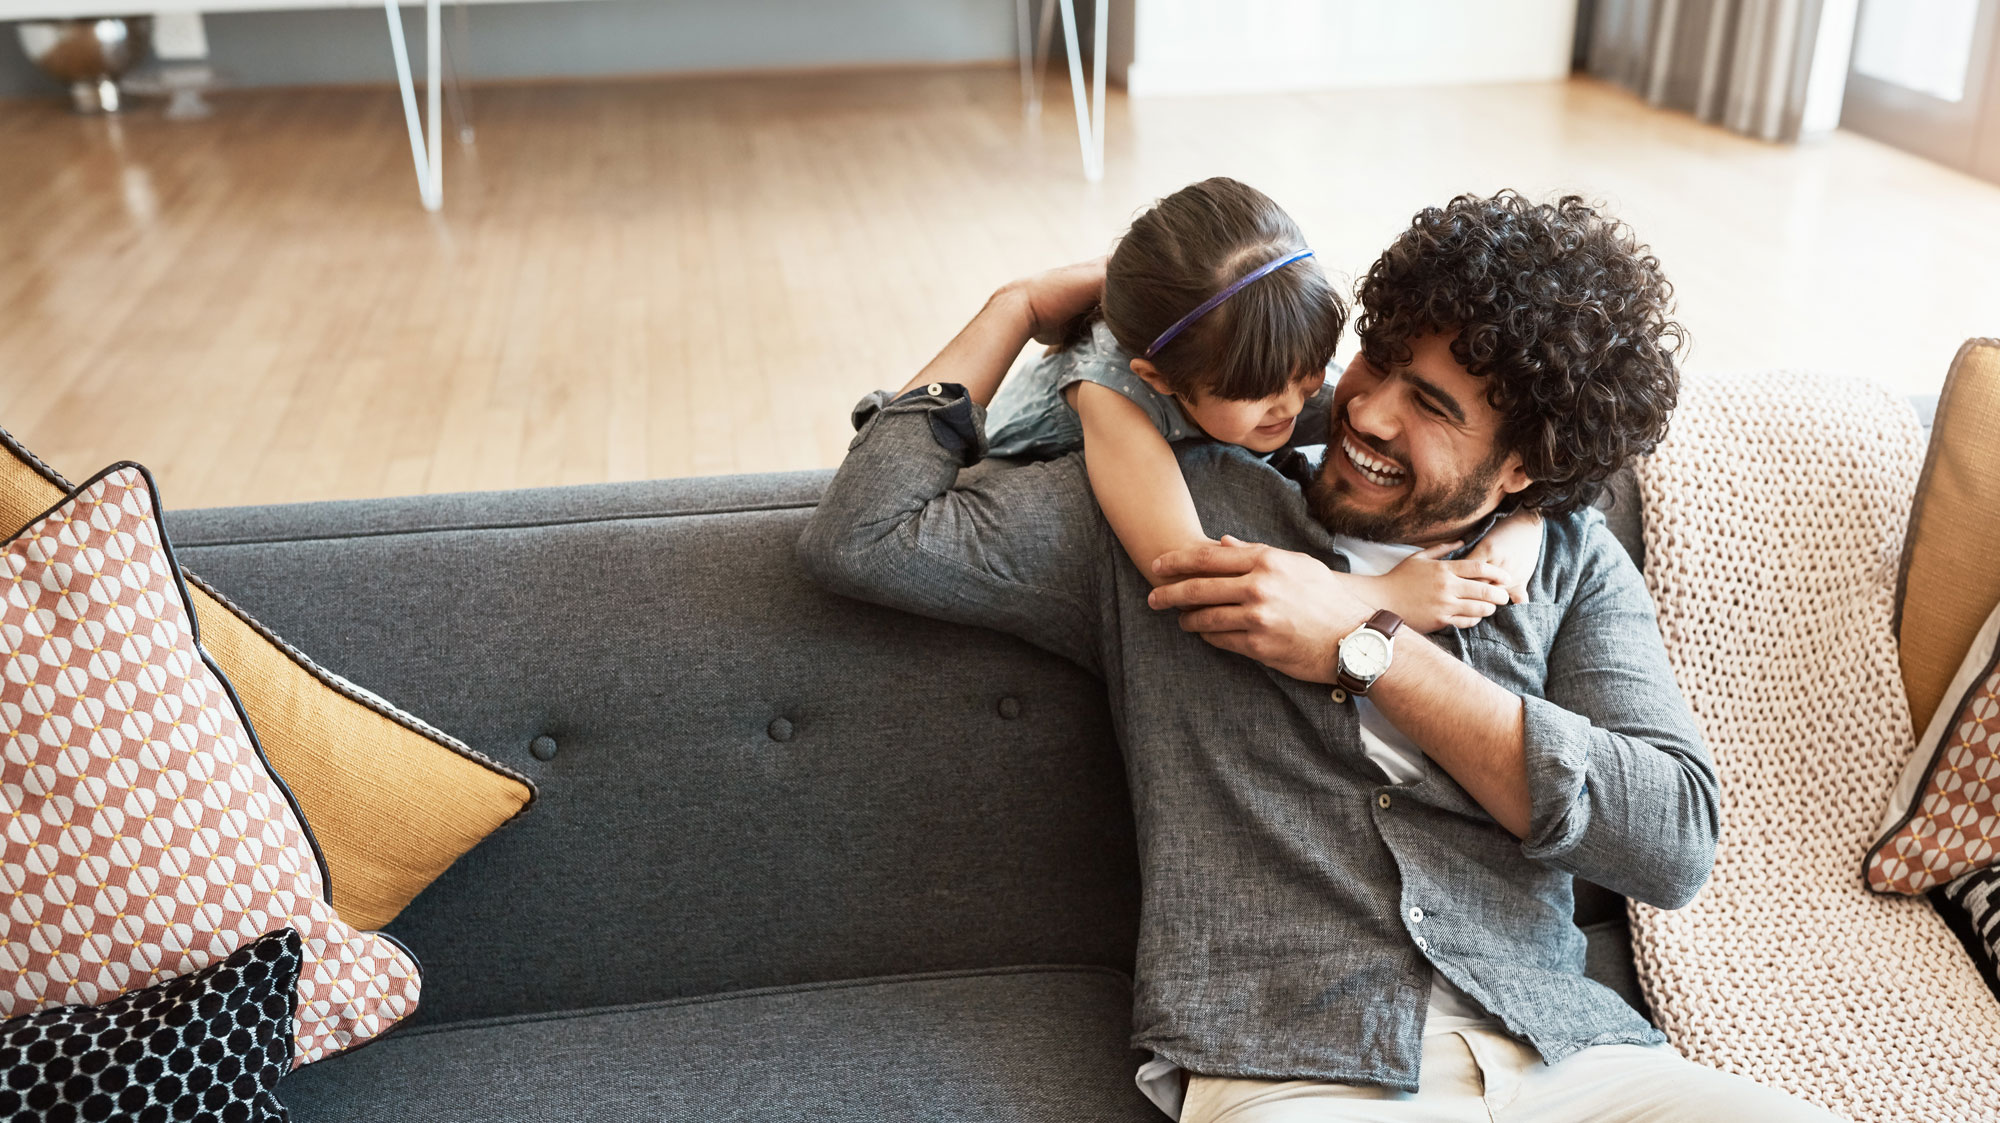 Young daughter smiling and hugging dad who is sitting on a couch